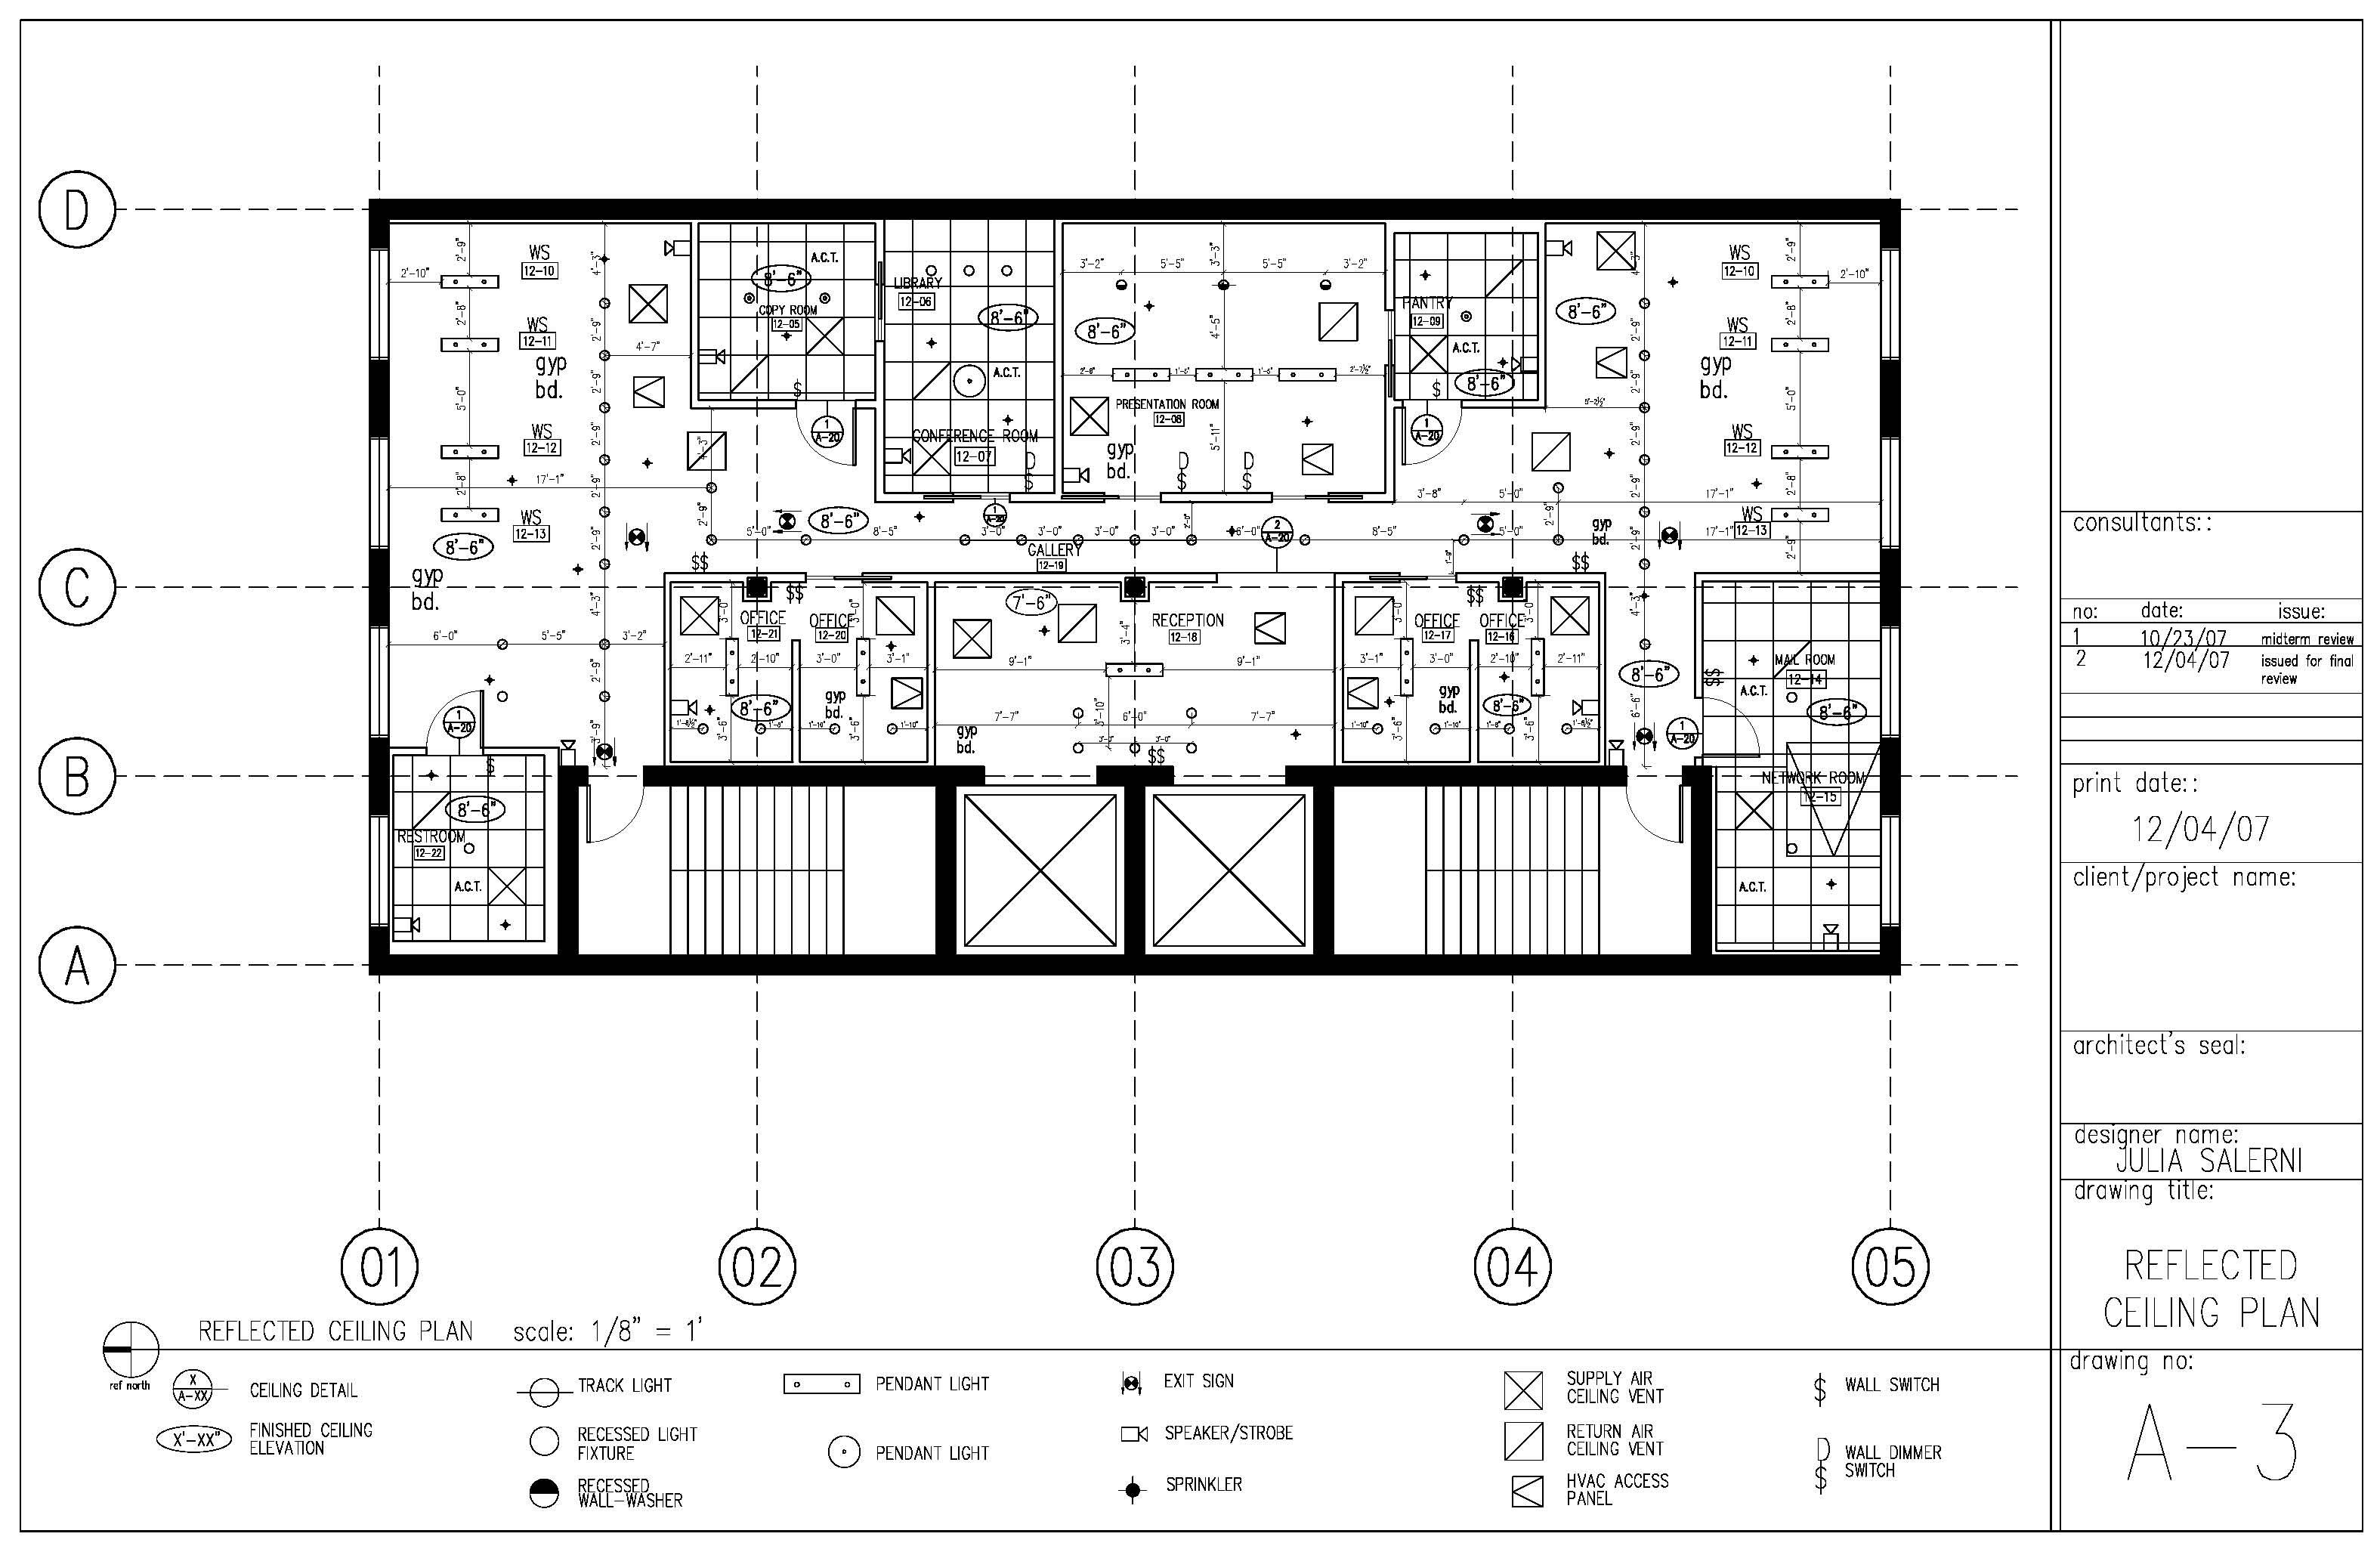 Construction Documents: Reflected Ceiling Plan Sample Page